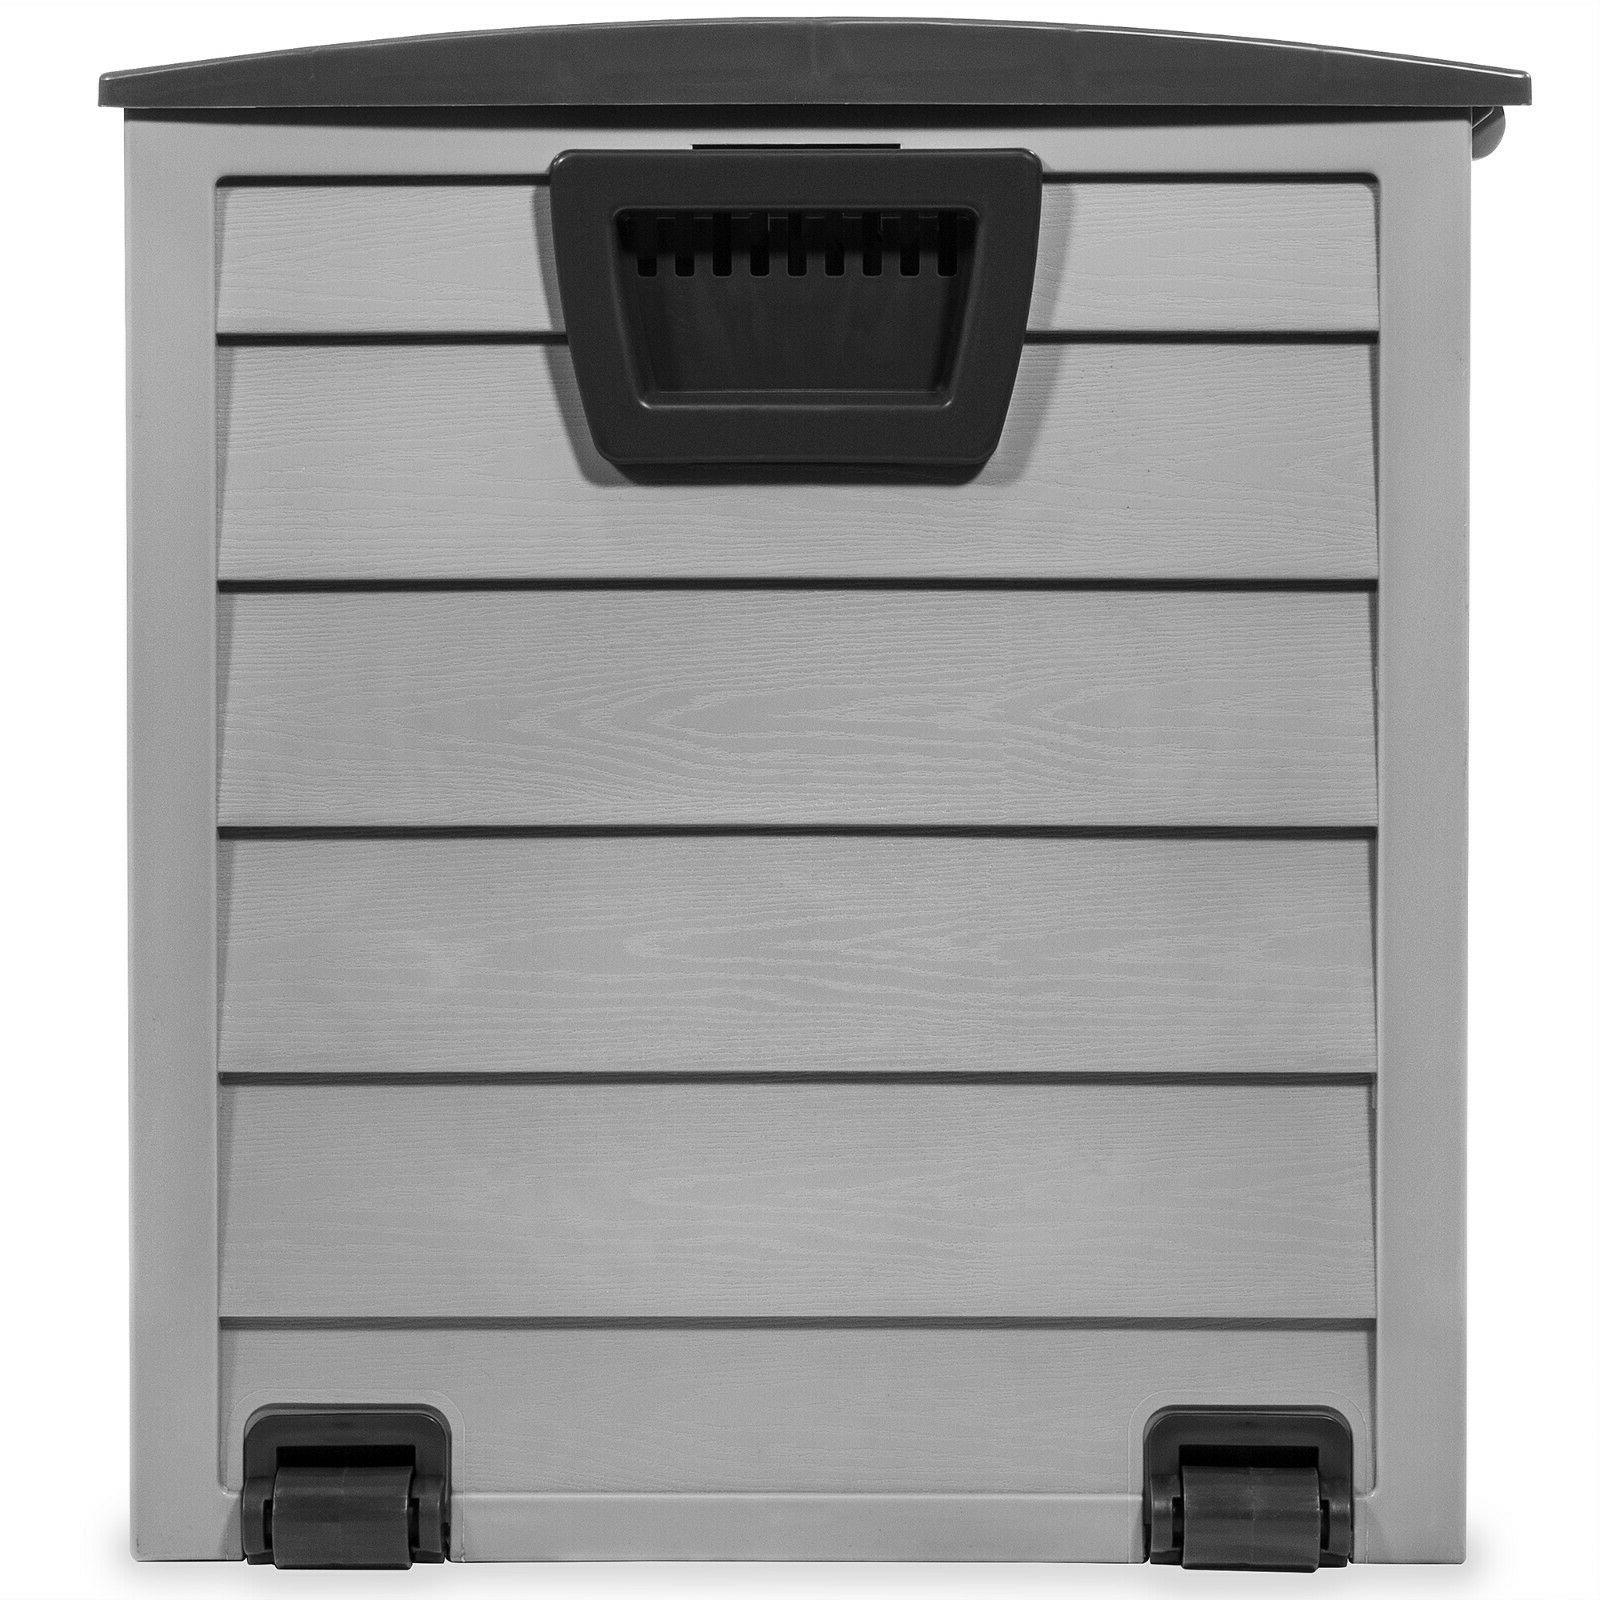 All-Weather Box w/ UV Shed Bin 63 Gallons